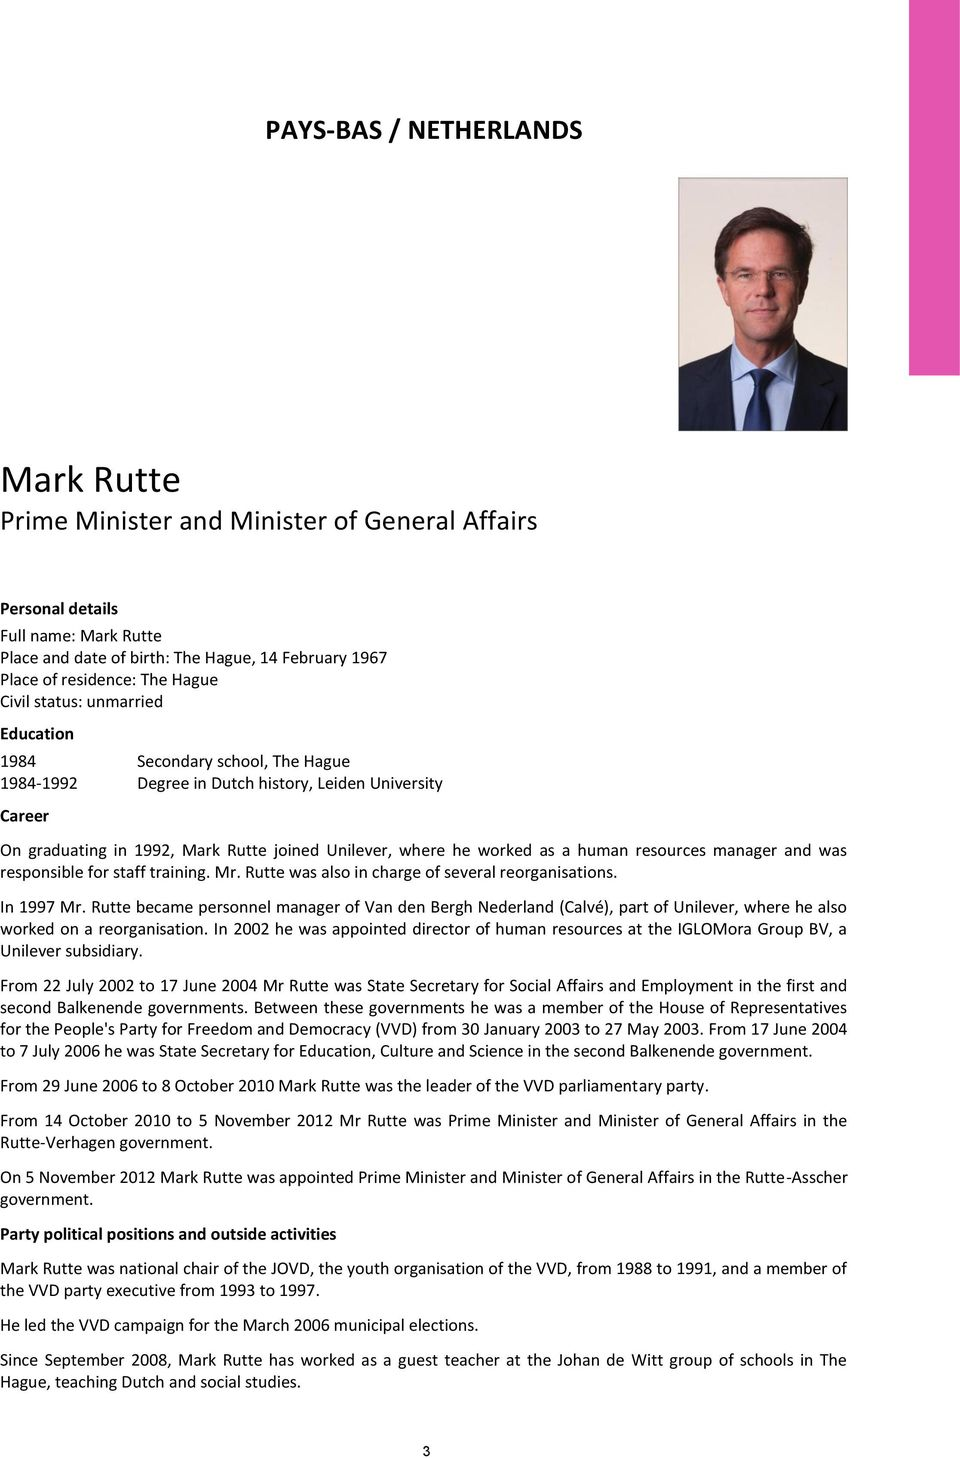 as a human resources manager and was responsible for staff training. Mr. Rutte was also in charge of several reorganisations. In 1997 Mr.